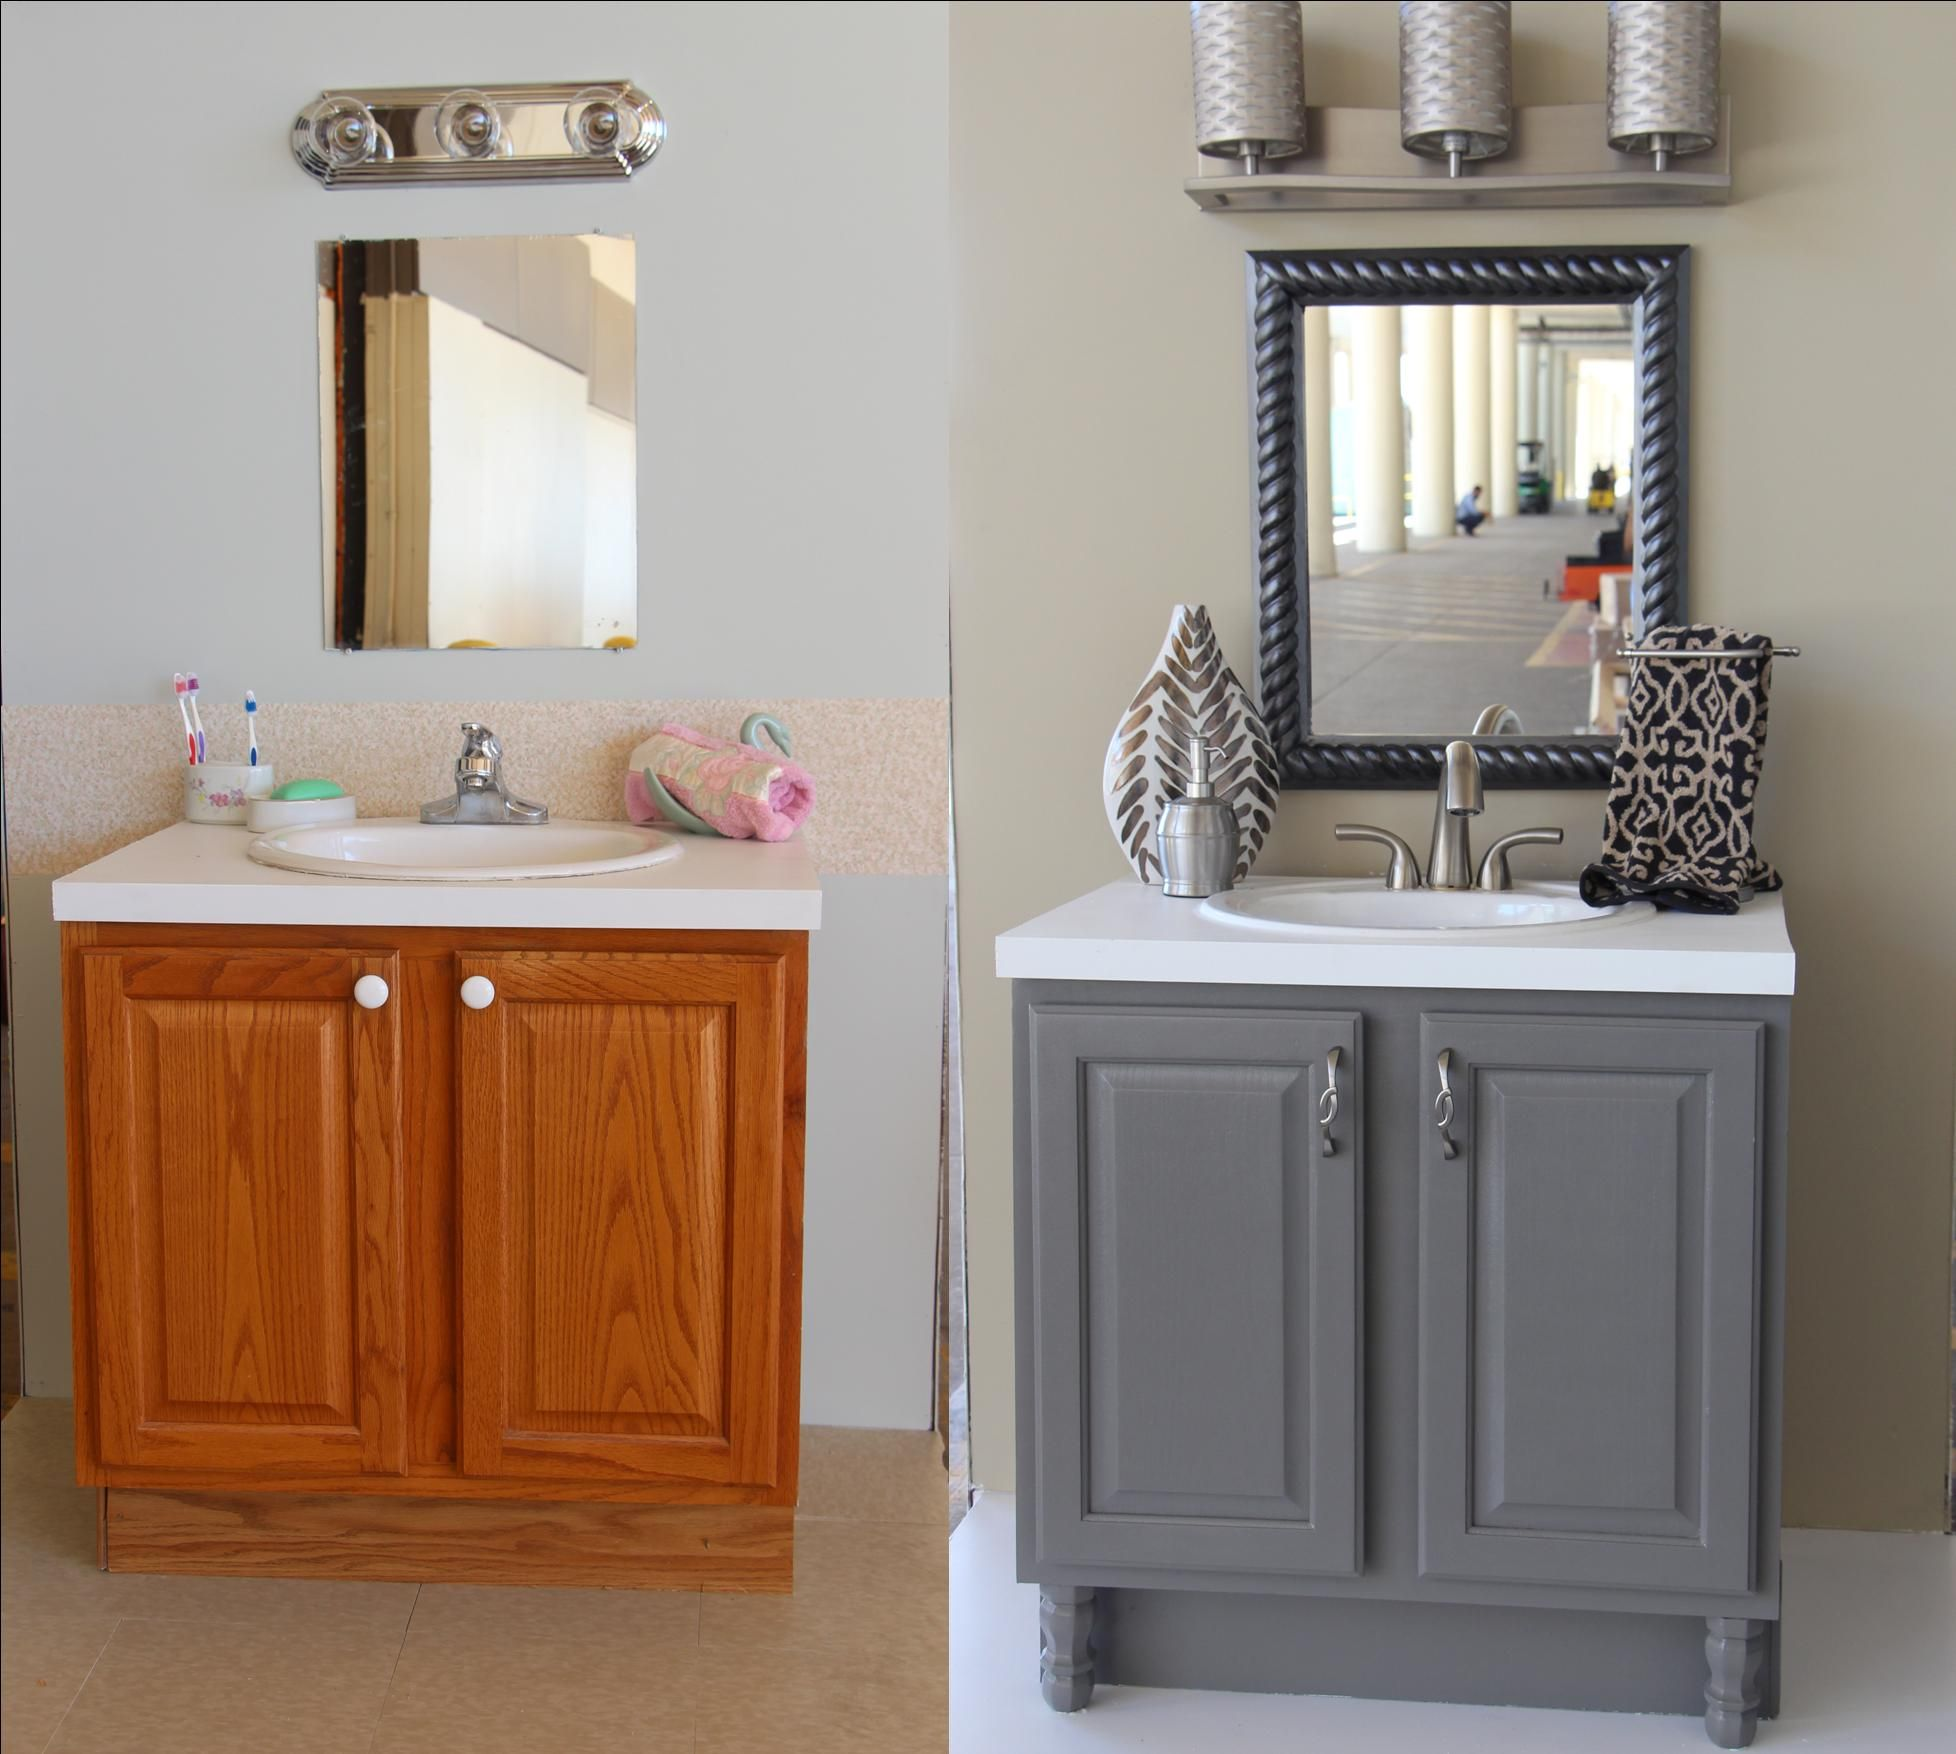 How To Paint Over Bathroom Cabinets | Savae.org